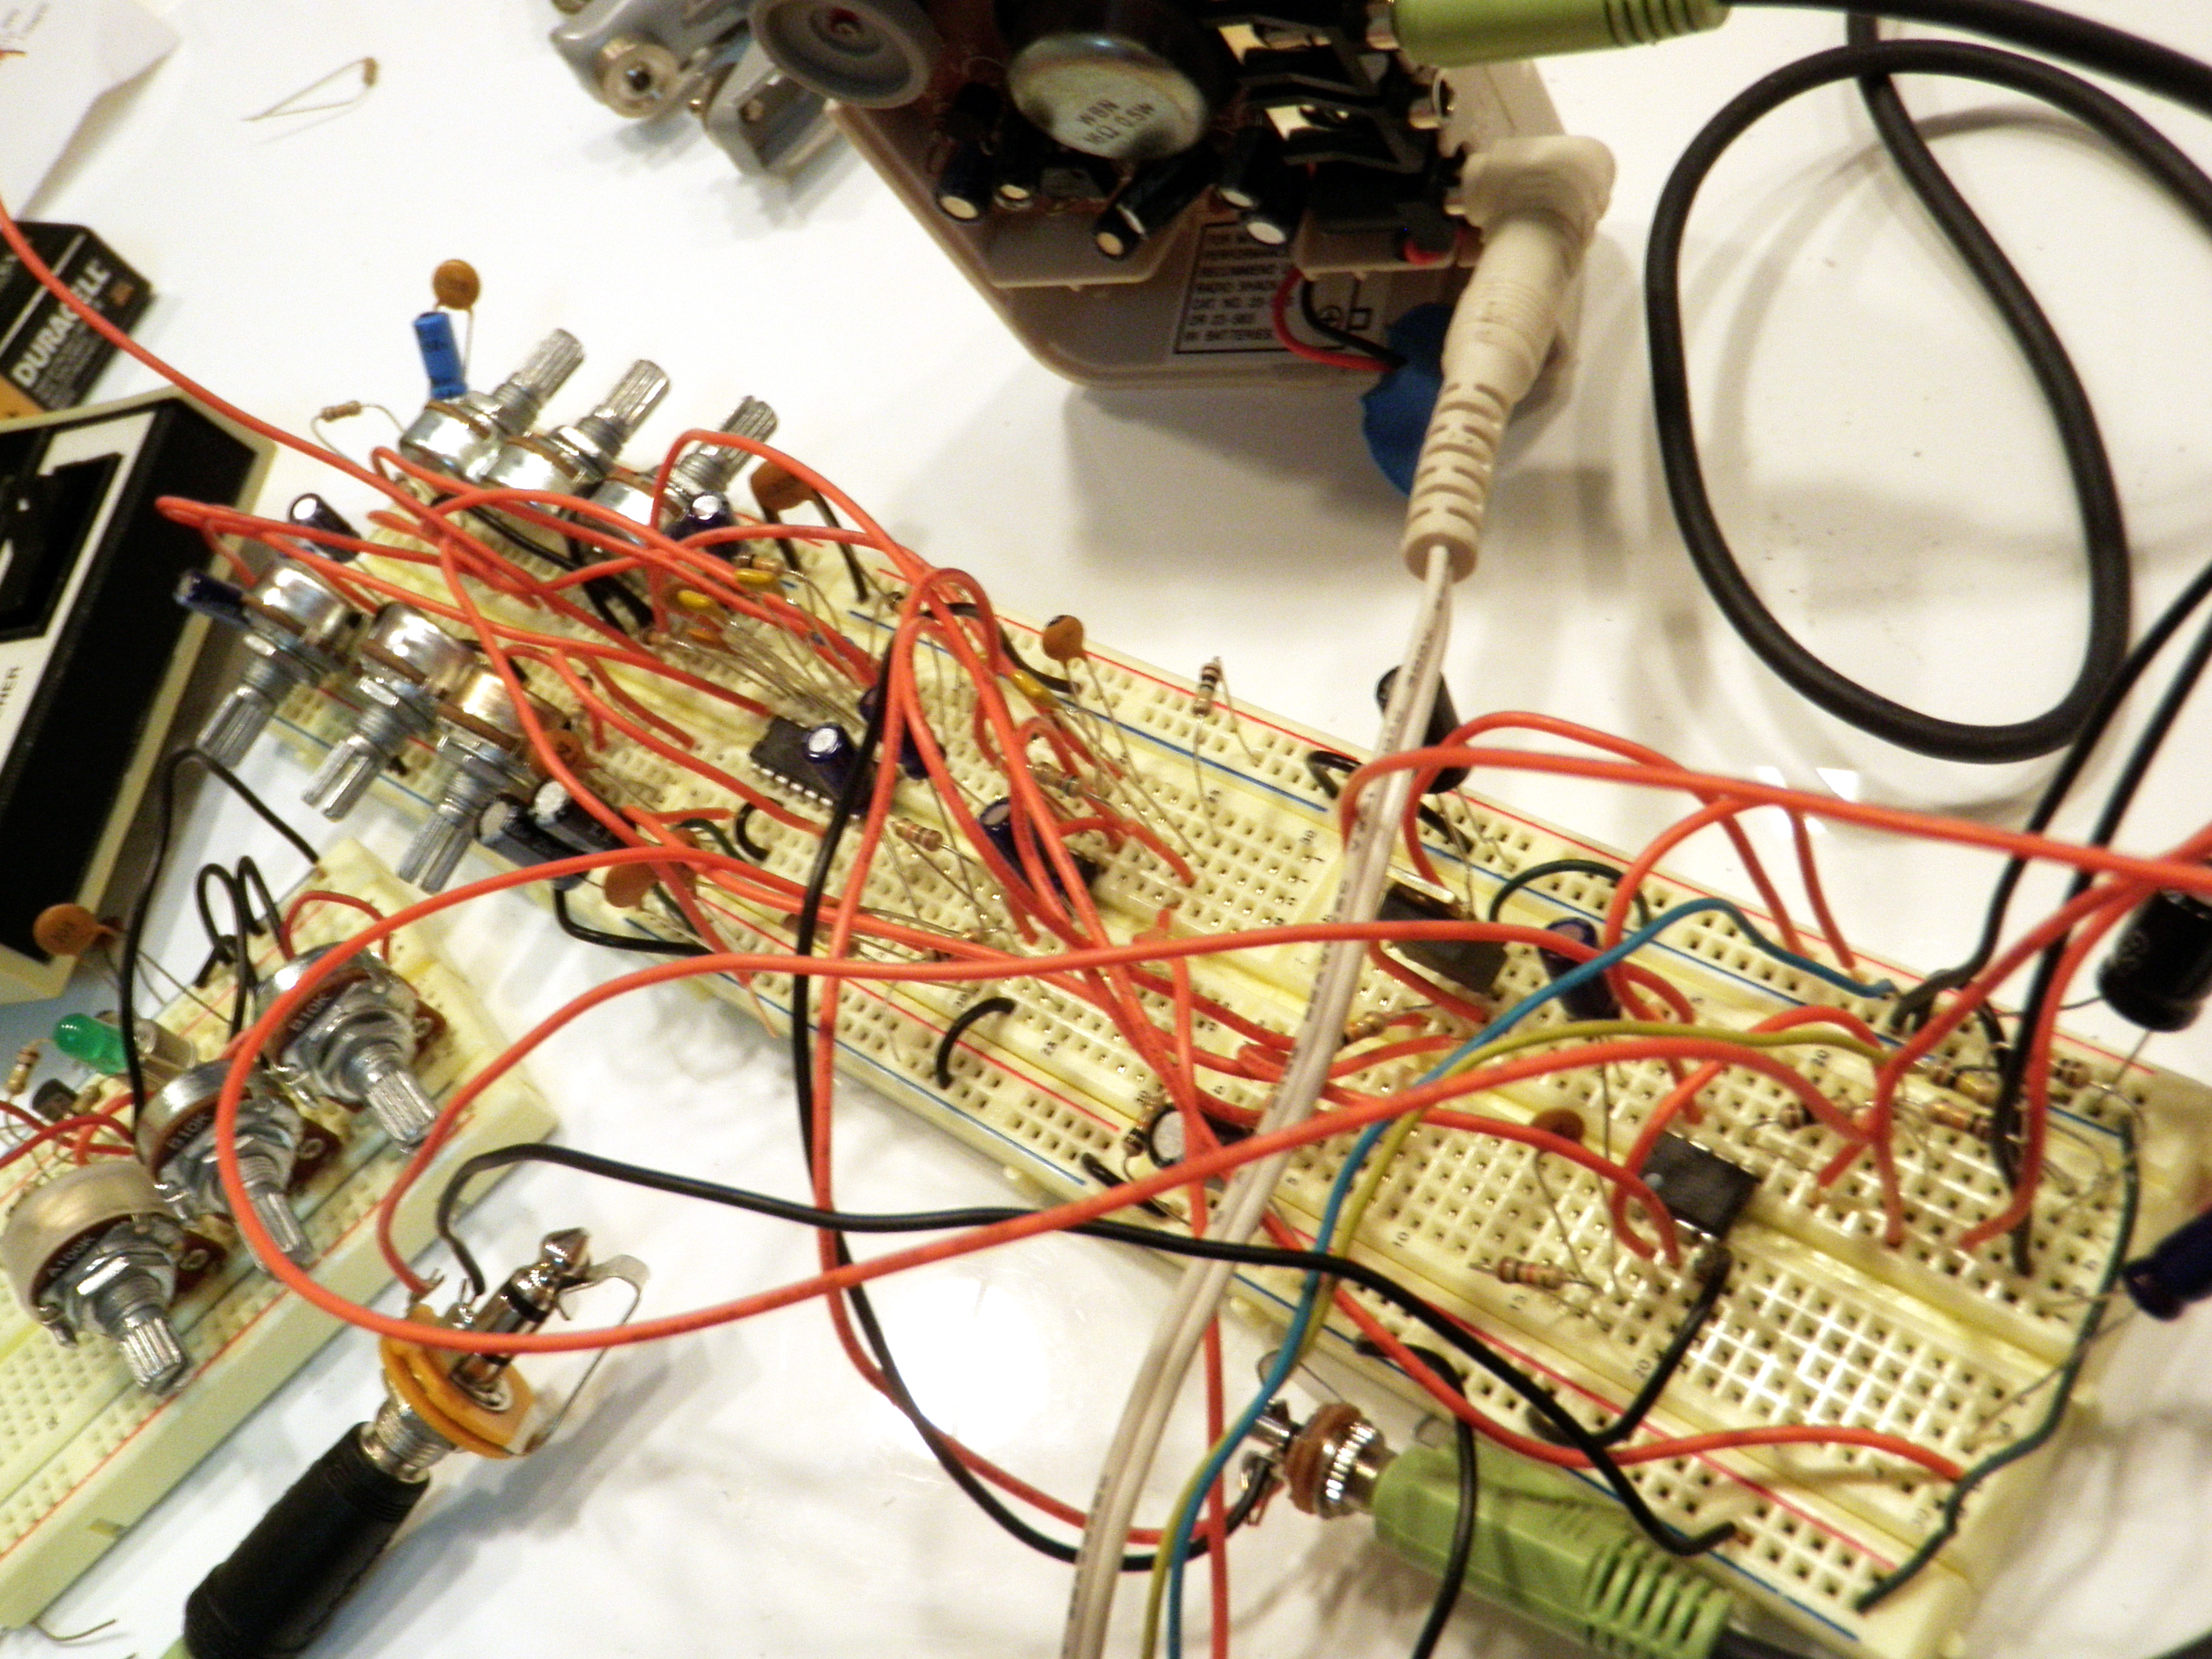 Picture of Breadboard the Circuit